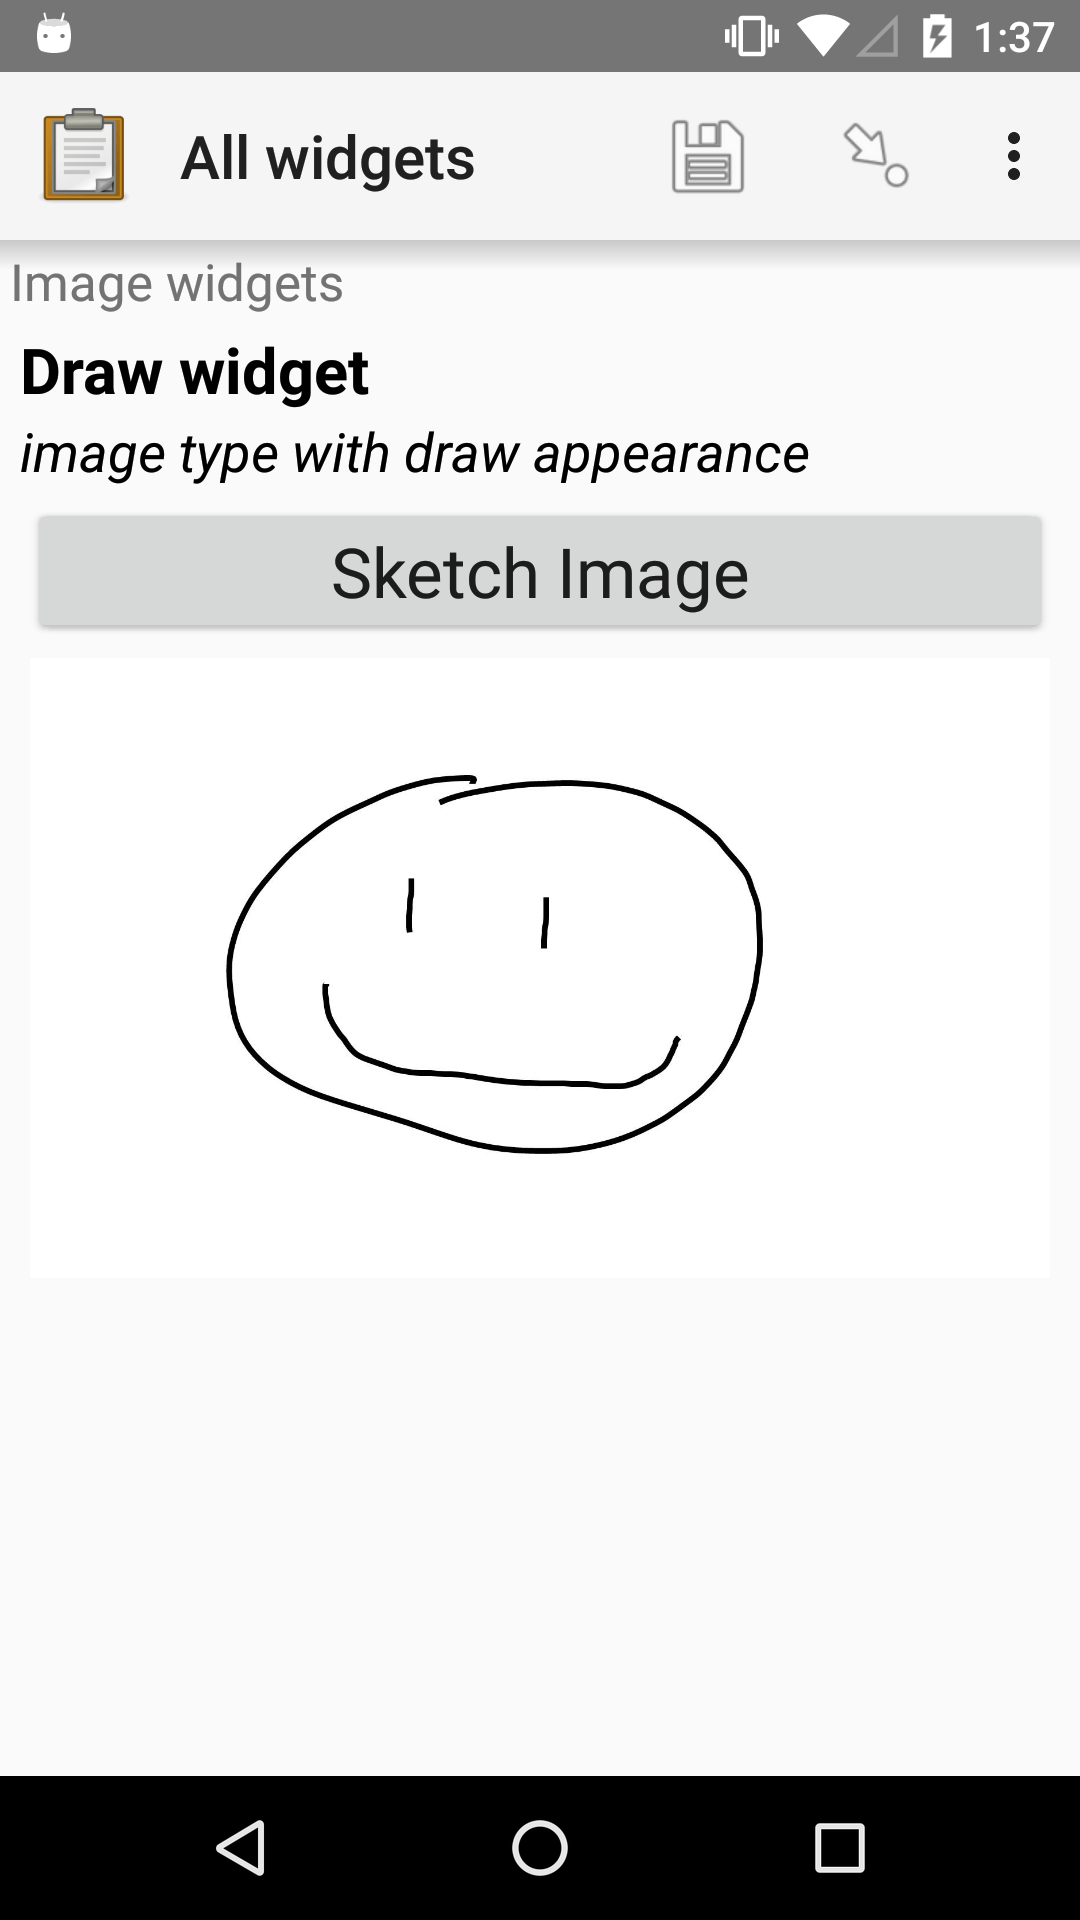 "The Draw widget as displayed previously. Below the ""Sketch Image"" button is the smiley face from the drawing pad image shown previously."